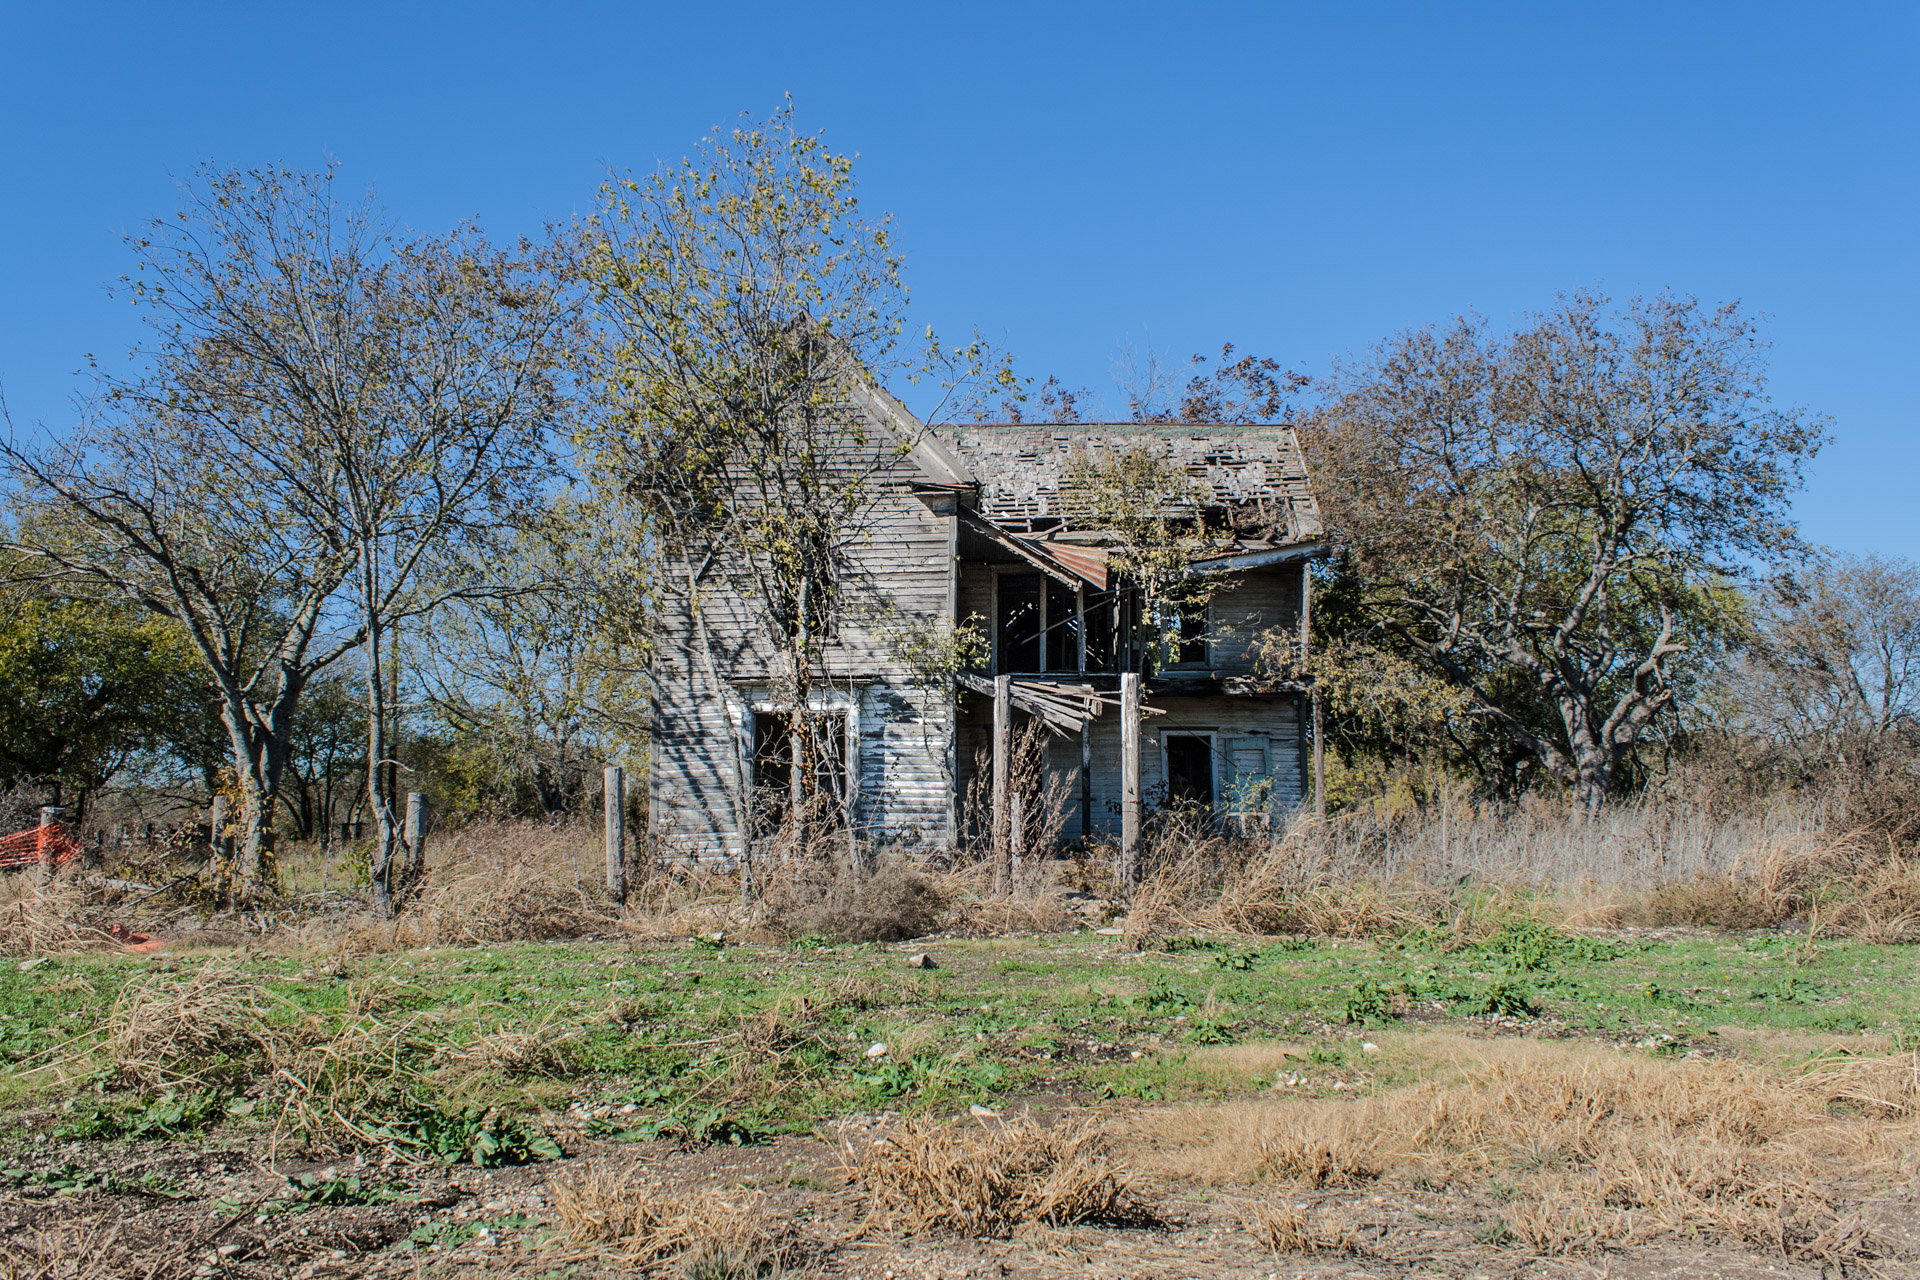 Bruceville-Eddy, Texas - Wide Open Two Story House (front far)